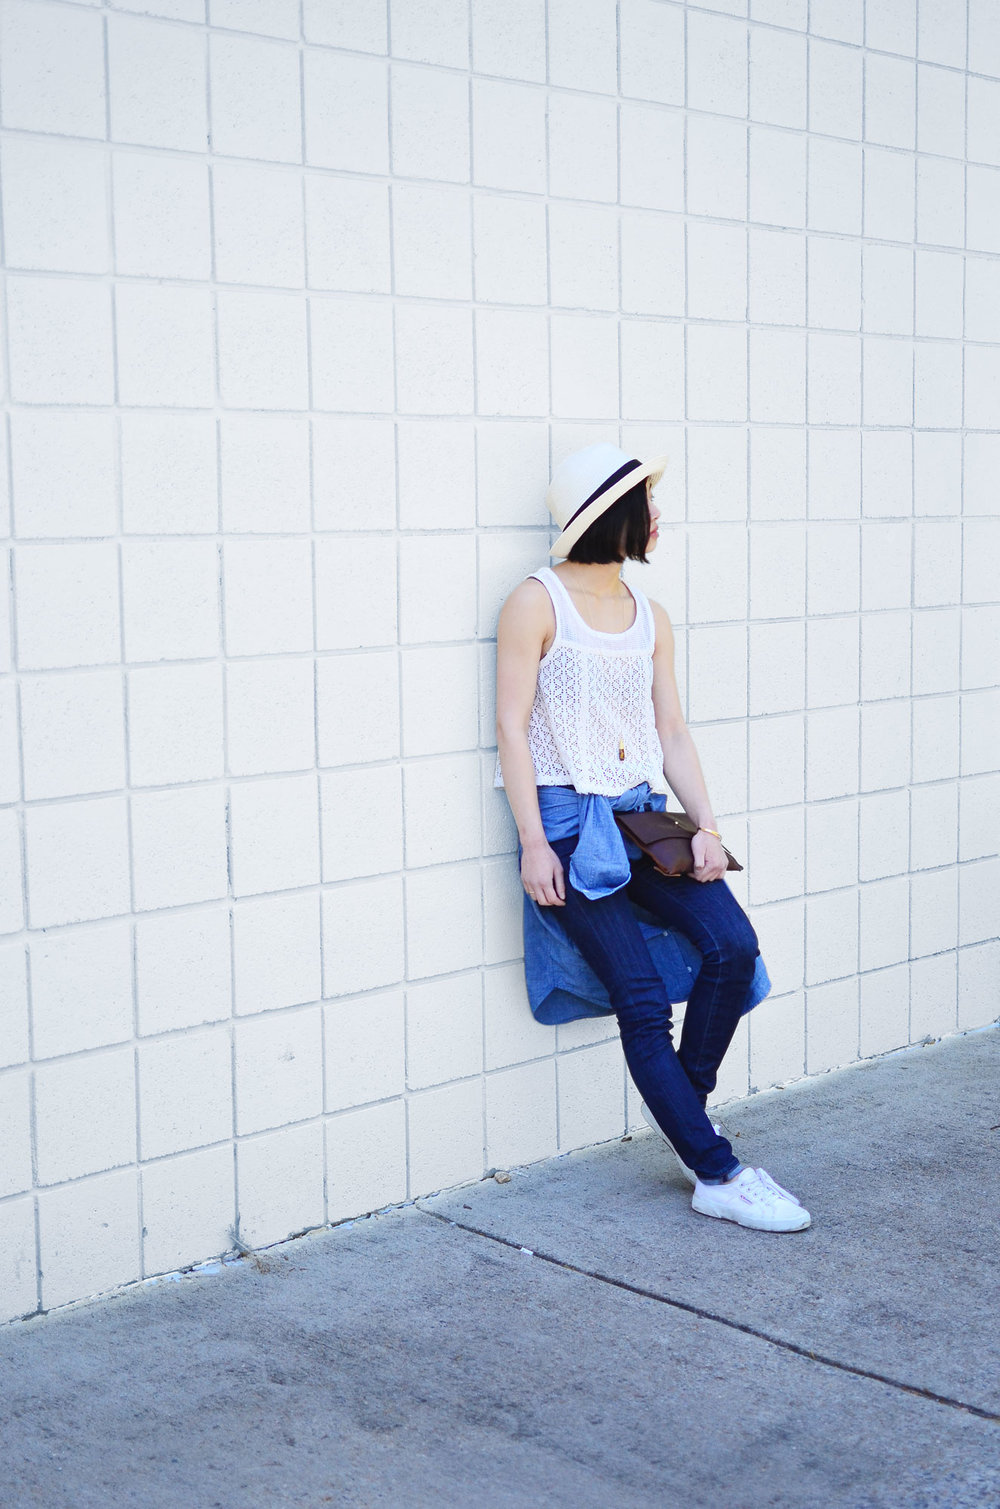 Talula Pelham hat, Free People crochet tank, Grana chambray boyfriend shirt, DTSLD high waisted skinny jeans, Crafts and Love Azul necklace and Mina cuff, Margaret Vera Kodiak clutch, Superga Cotu